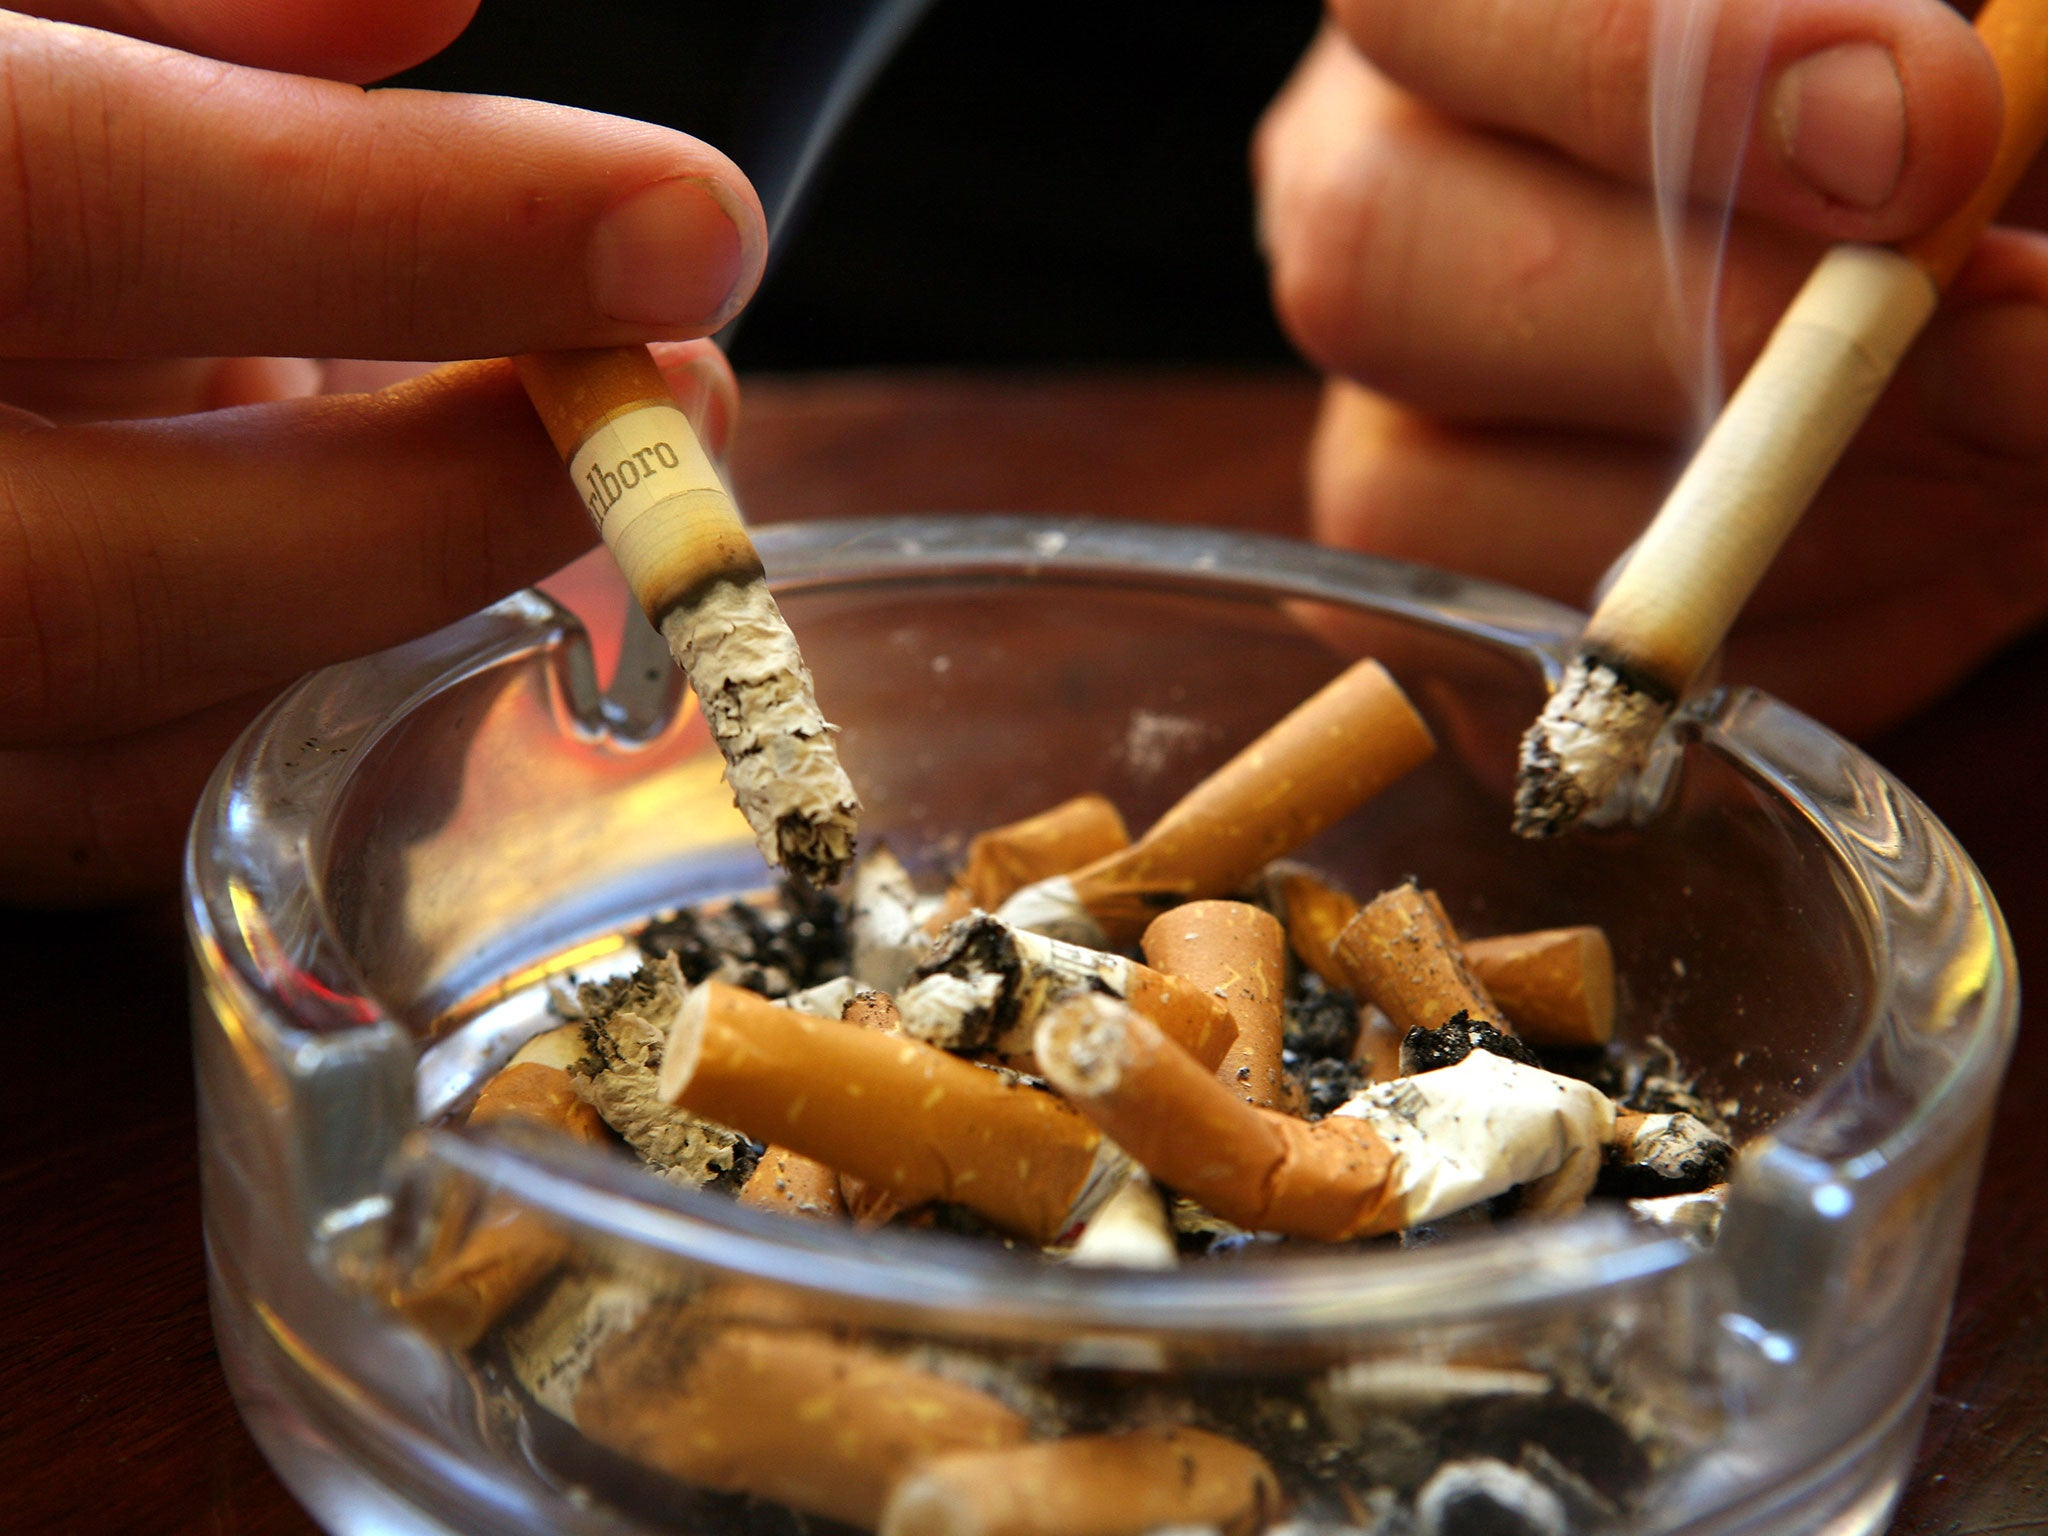 Lung cancer deaths 'set to double among those who have never smoked'